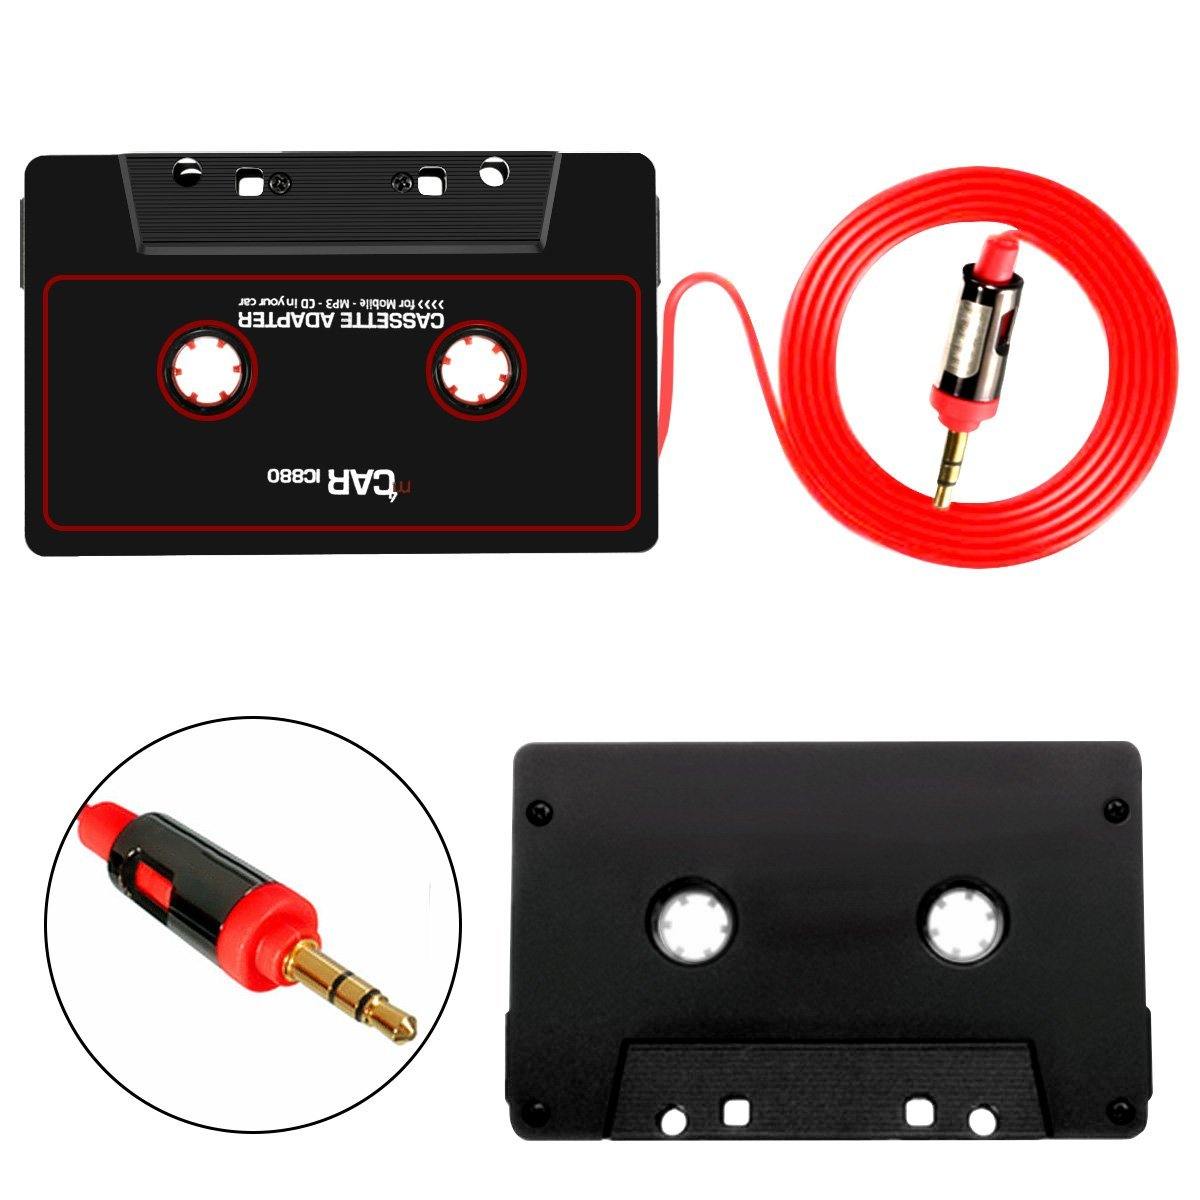 Car Cassette adapter & Tape Player Convertor For iPod, iPhone With Aux Cord